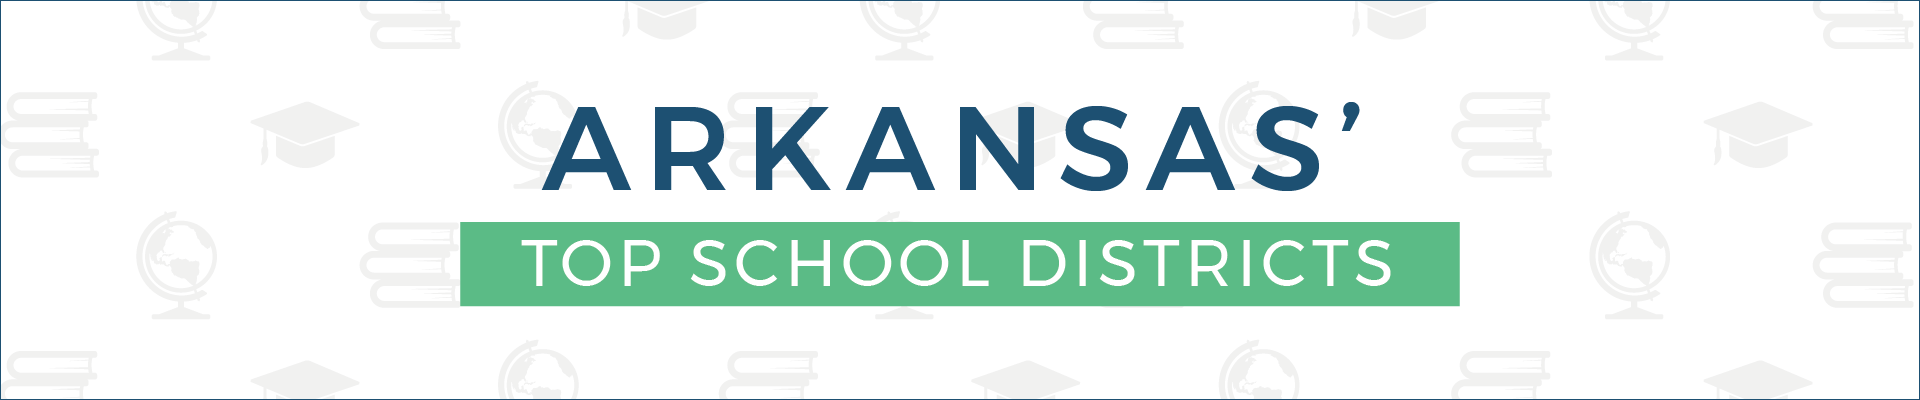 arkansas_top_school_district_banner_2020